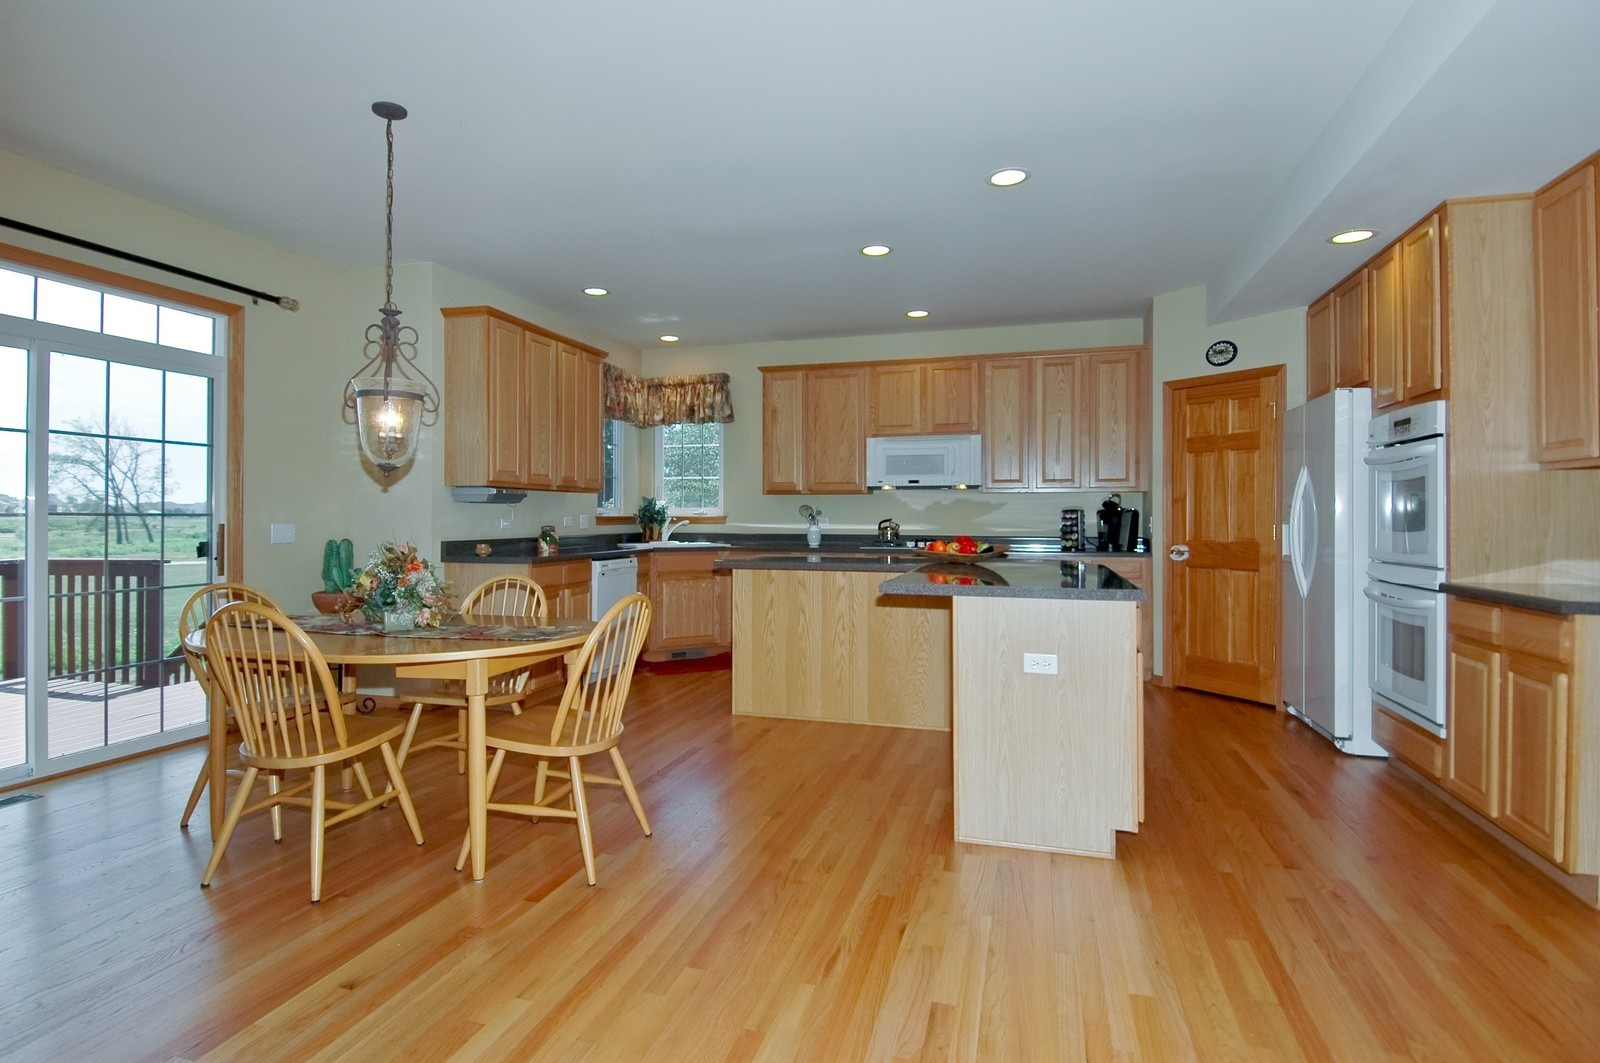 Real Estate Photography - 750 Saratoga Circle, Algonquin, IL, 60102 - Kitchen